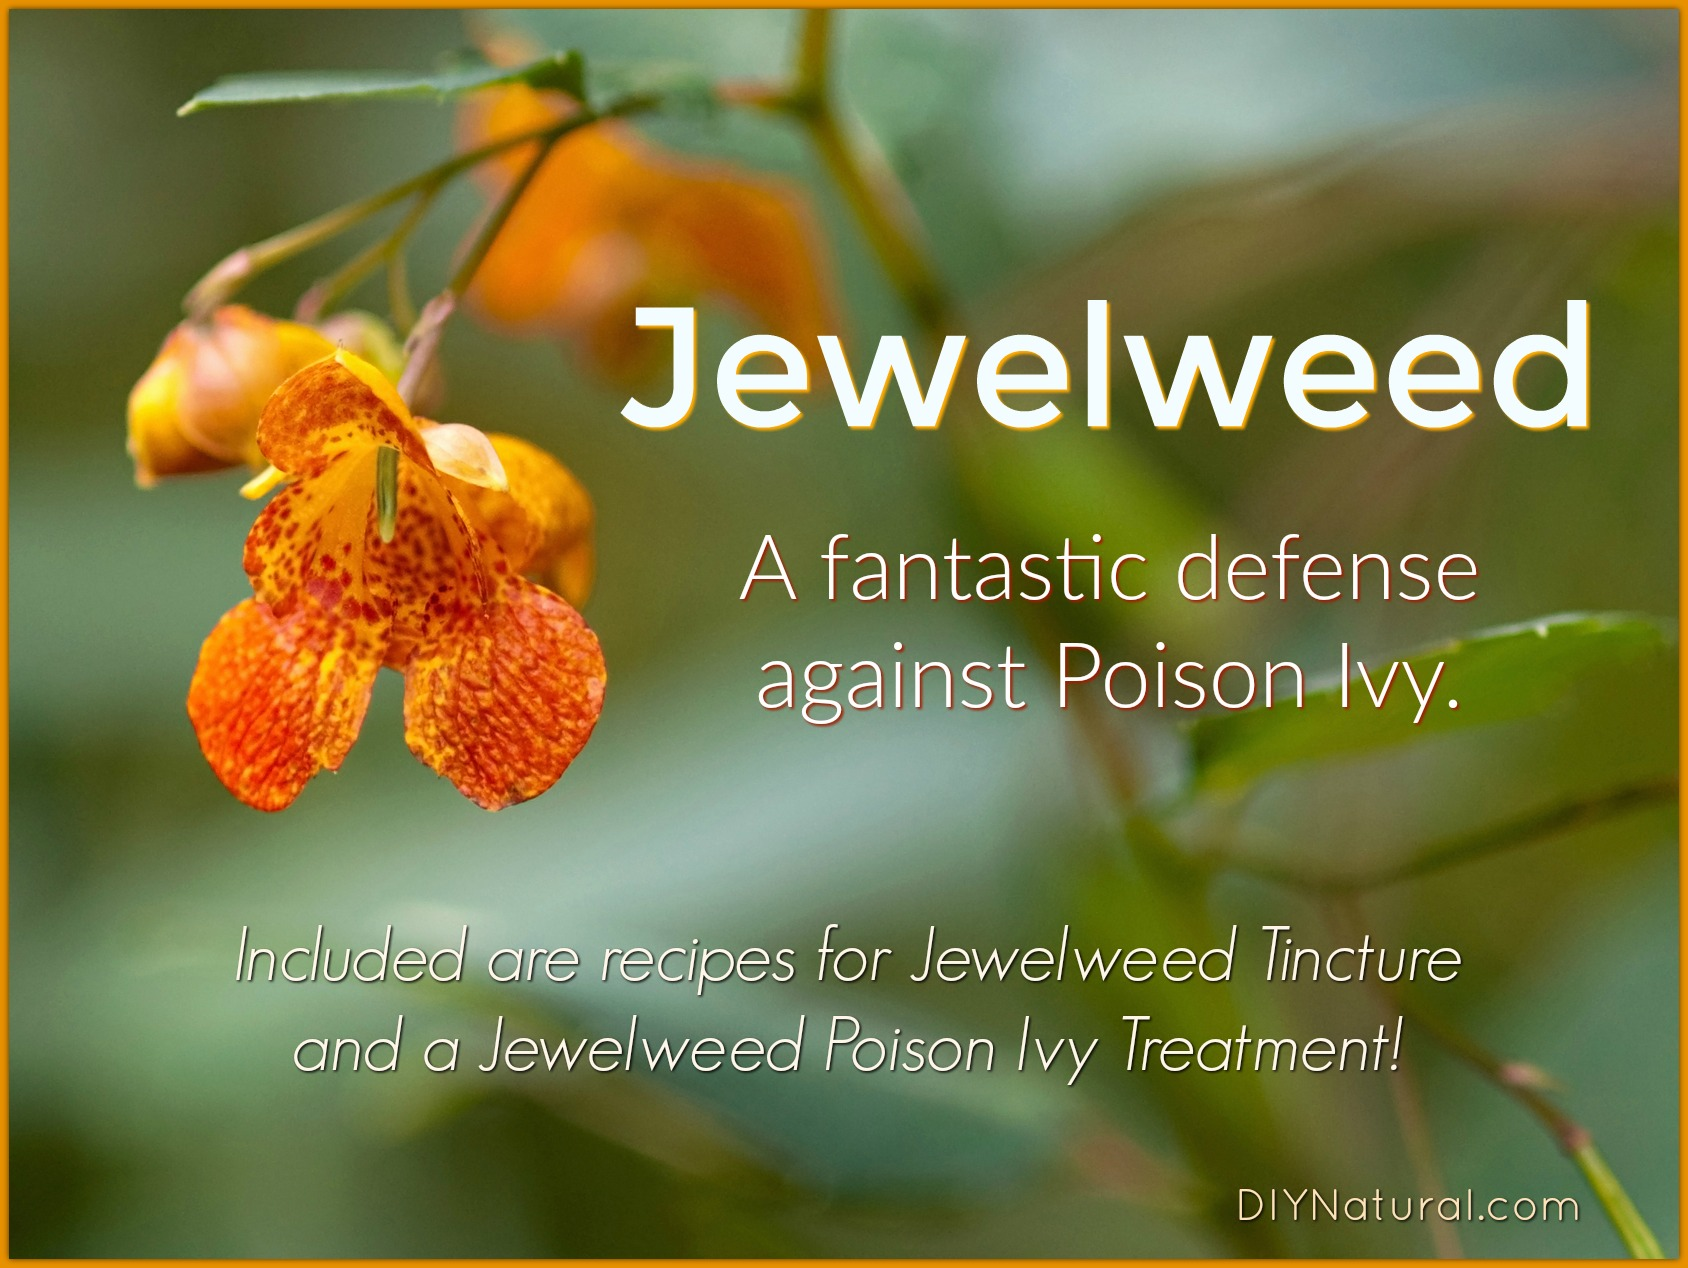 Jewelweed All About The Plant And A Jewelweed Poison Ivy Treatment